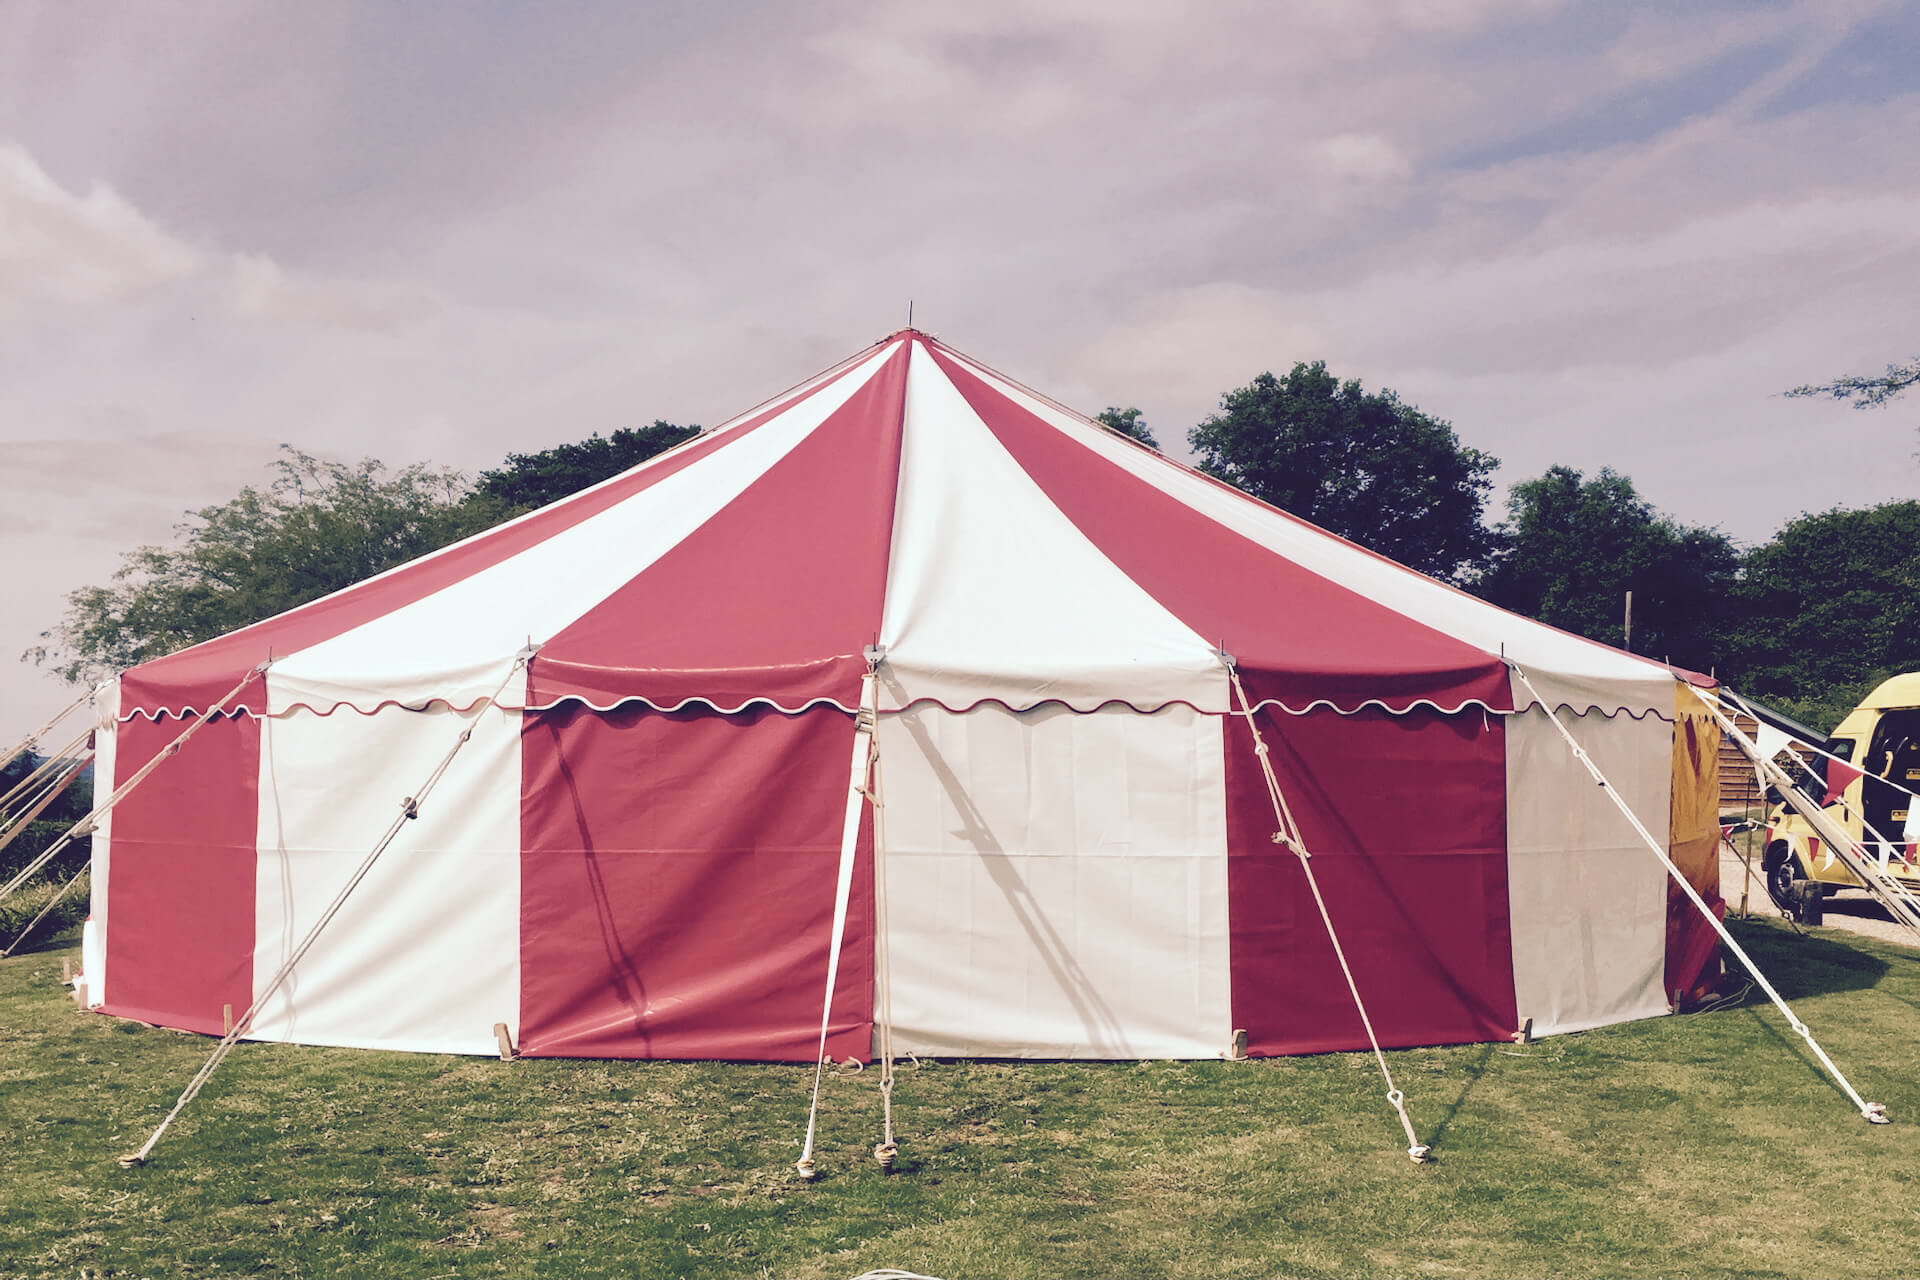 9m Red & white striped round tent